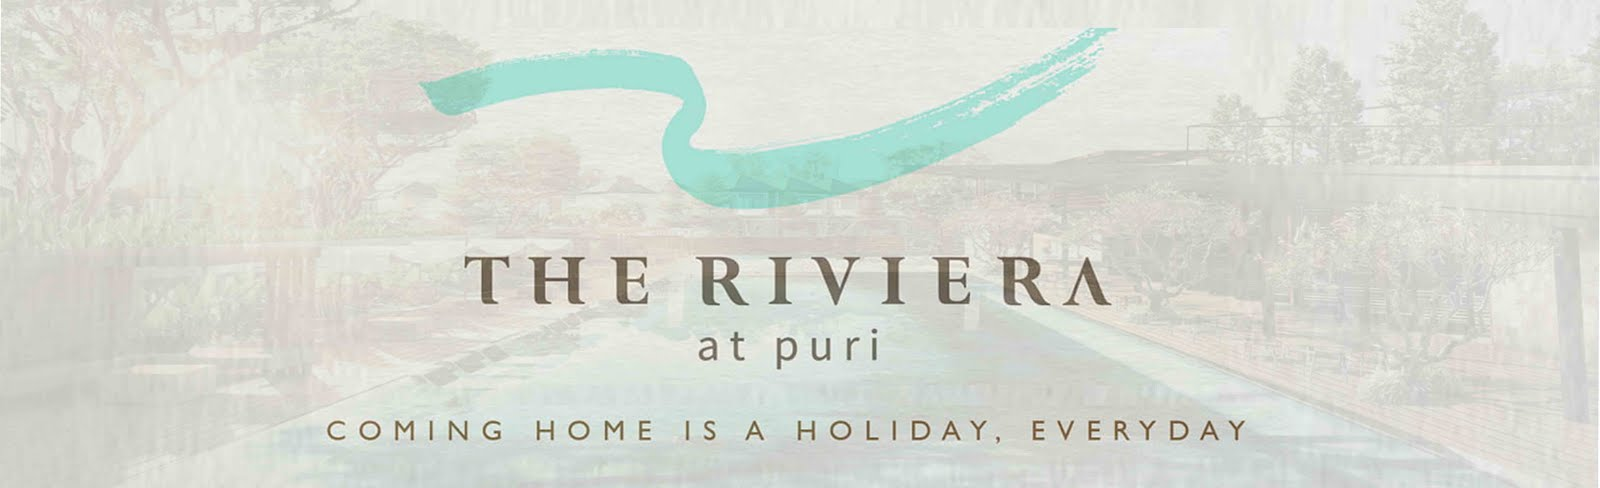 The Riviera at Puri Phase 2